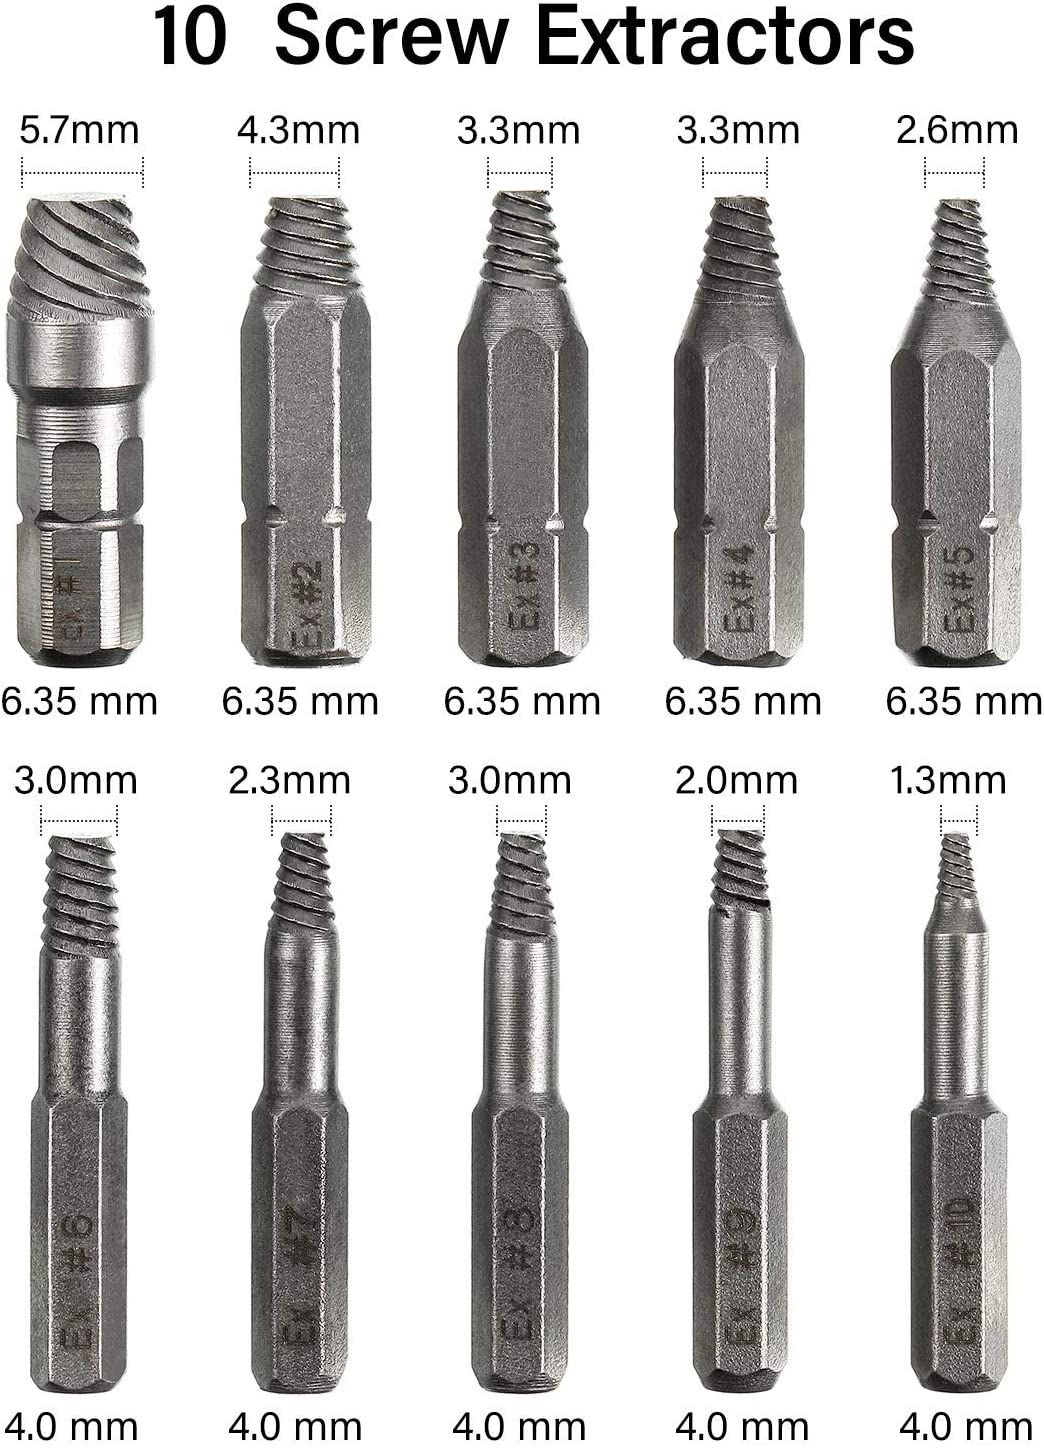 Extractor HSS Bolt Remover Set with Socket Adapter and Extension Drill Bit Holder 22 Pieces Damaged Stripped Screw Extractor Kit Stripping Broken Screw Removal with 10 Different Size Drill Bits